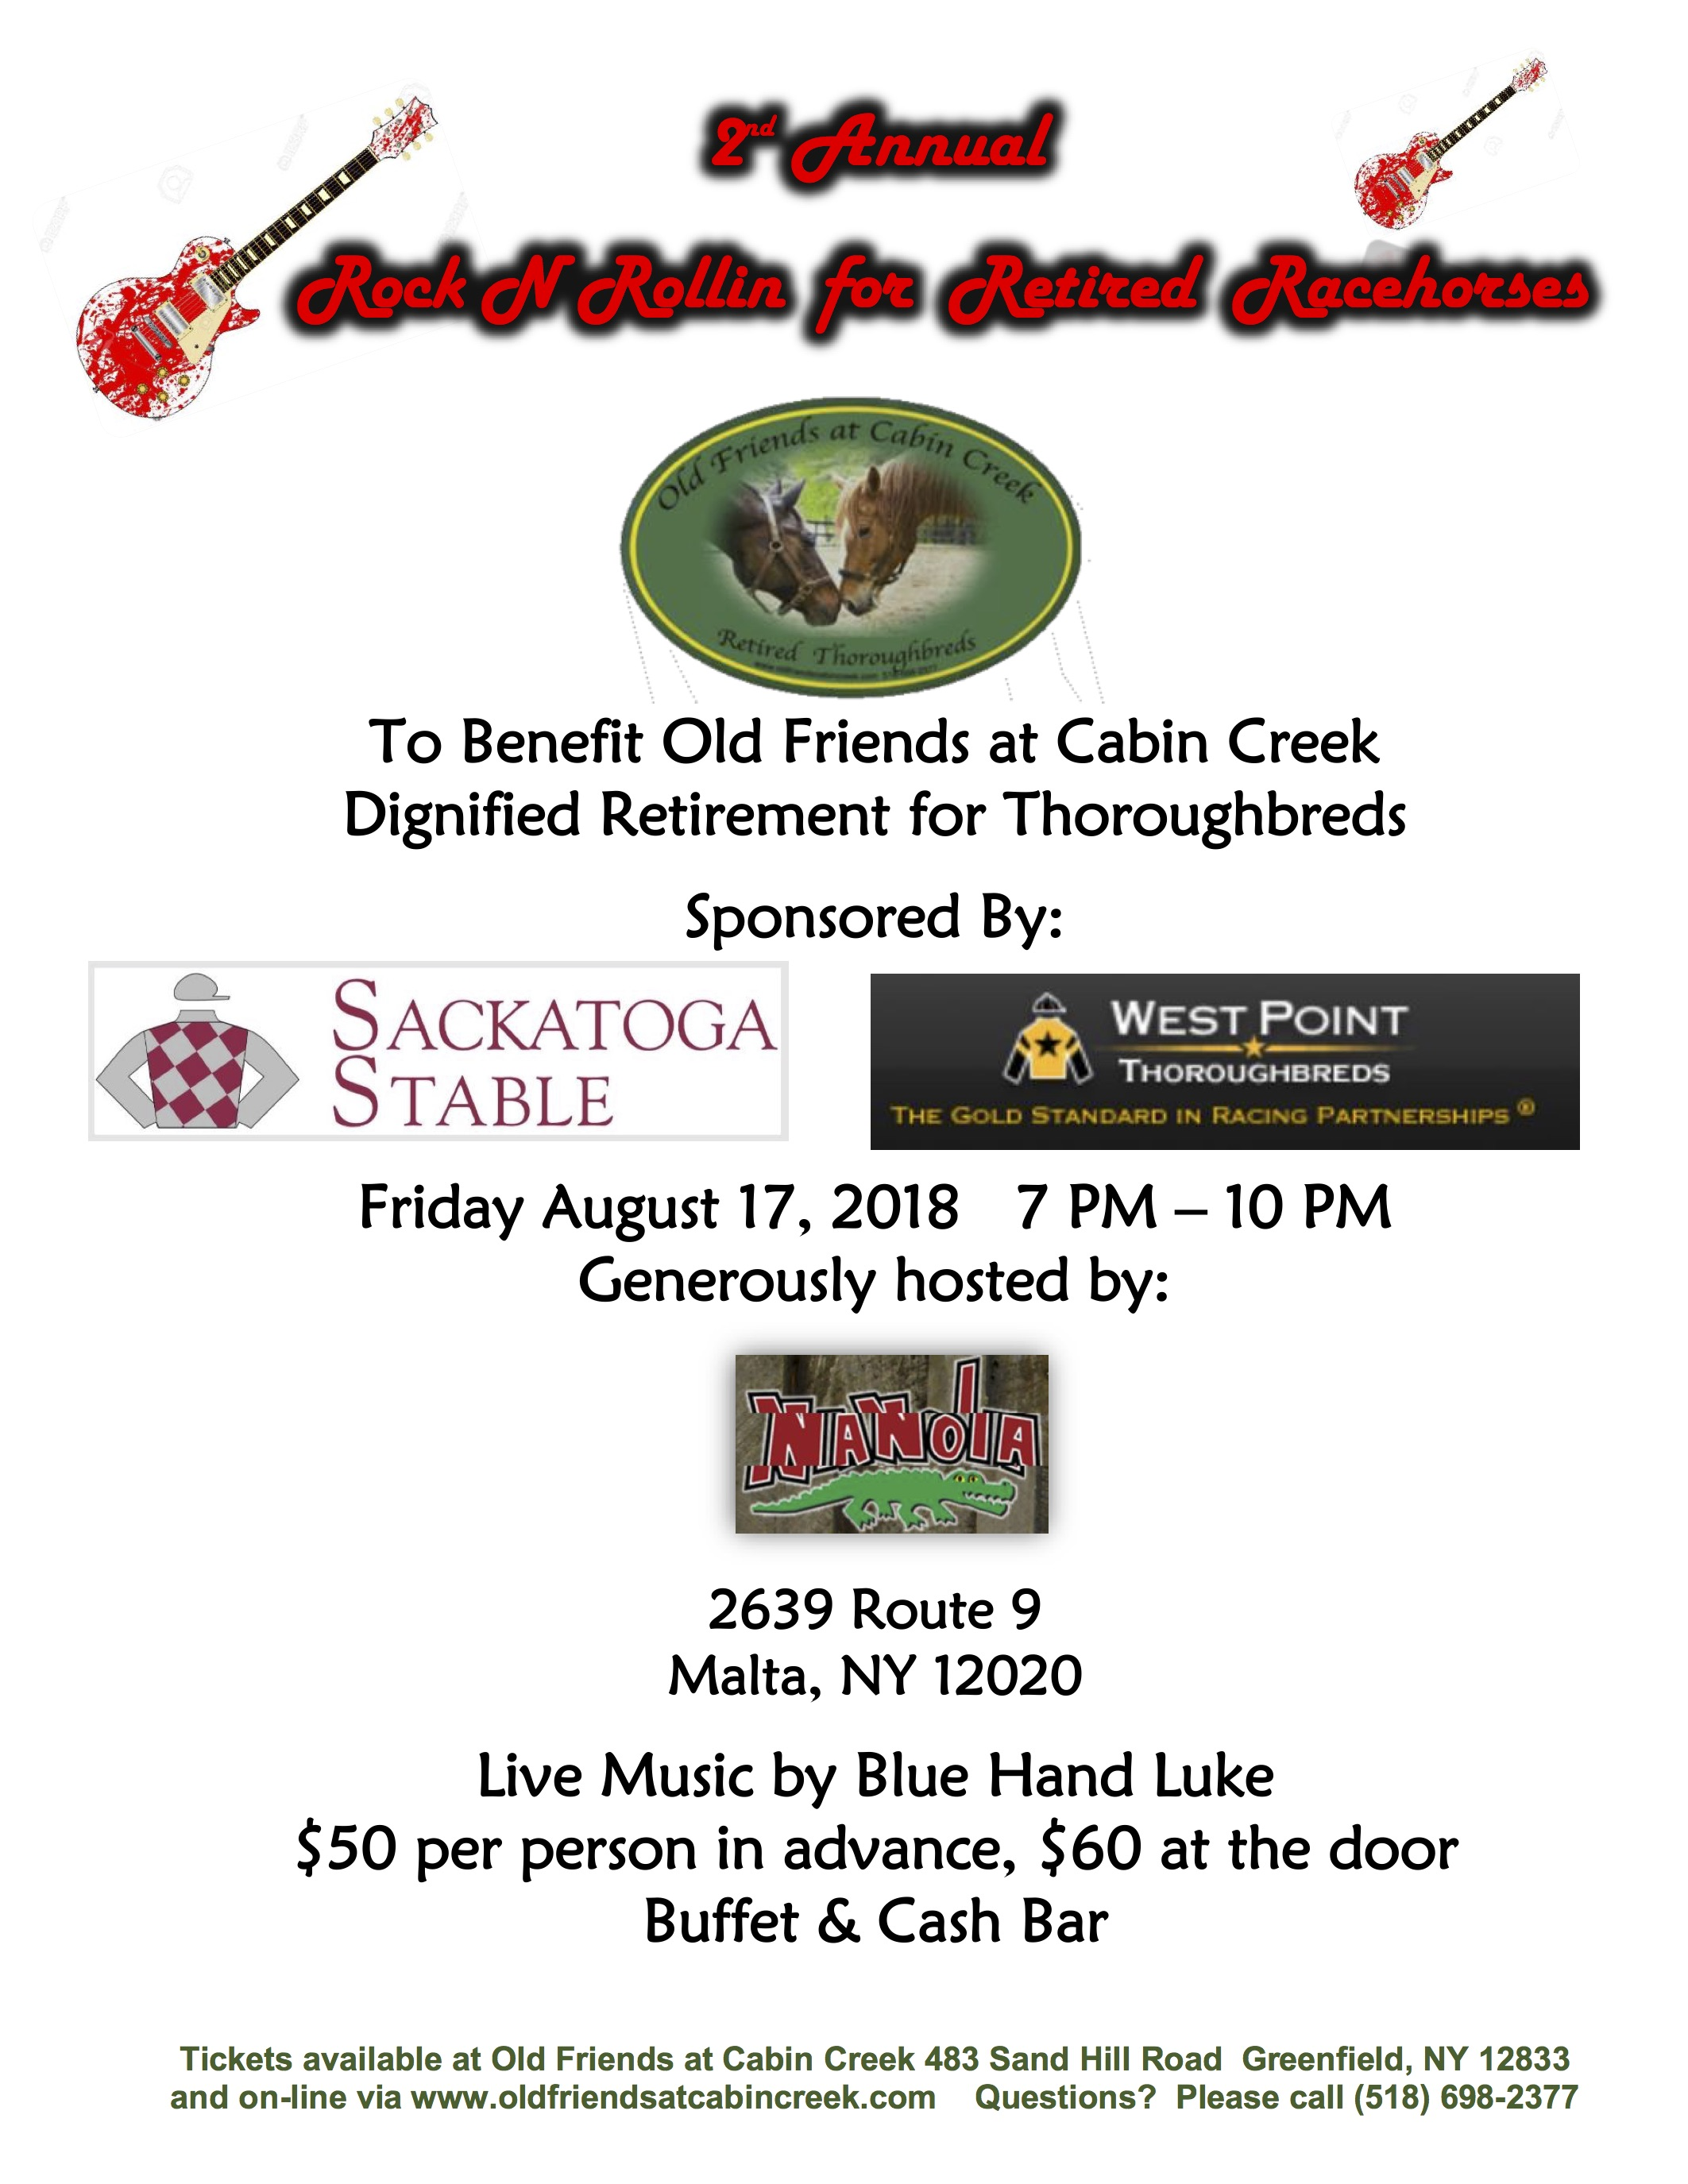 2nd Annual Rock n Rollin' for Retired Thoroughbreds